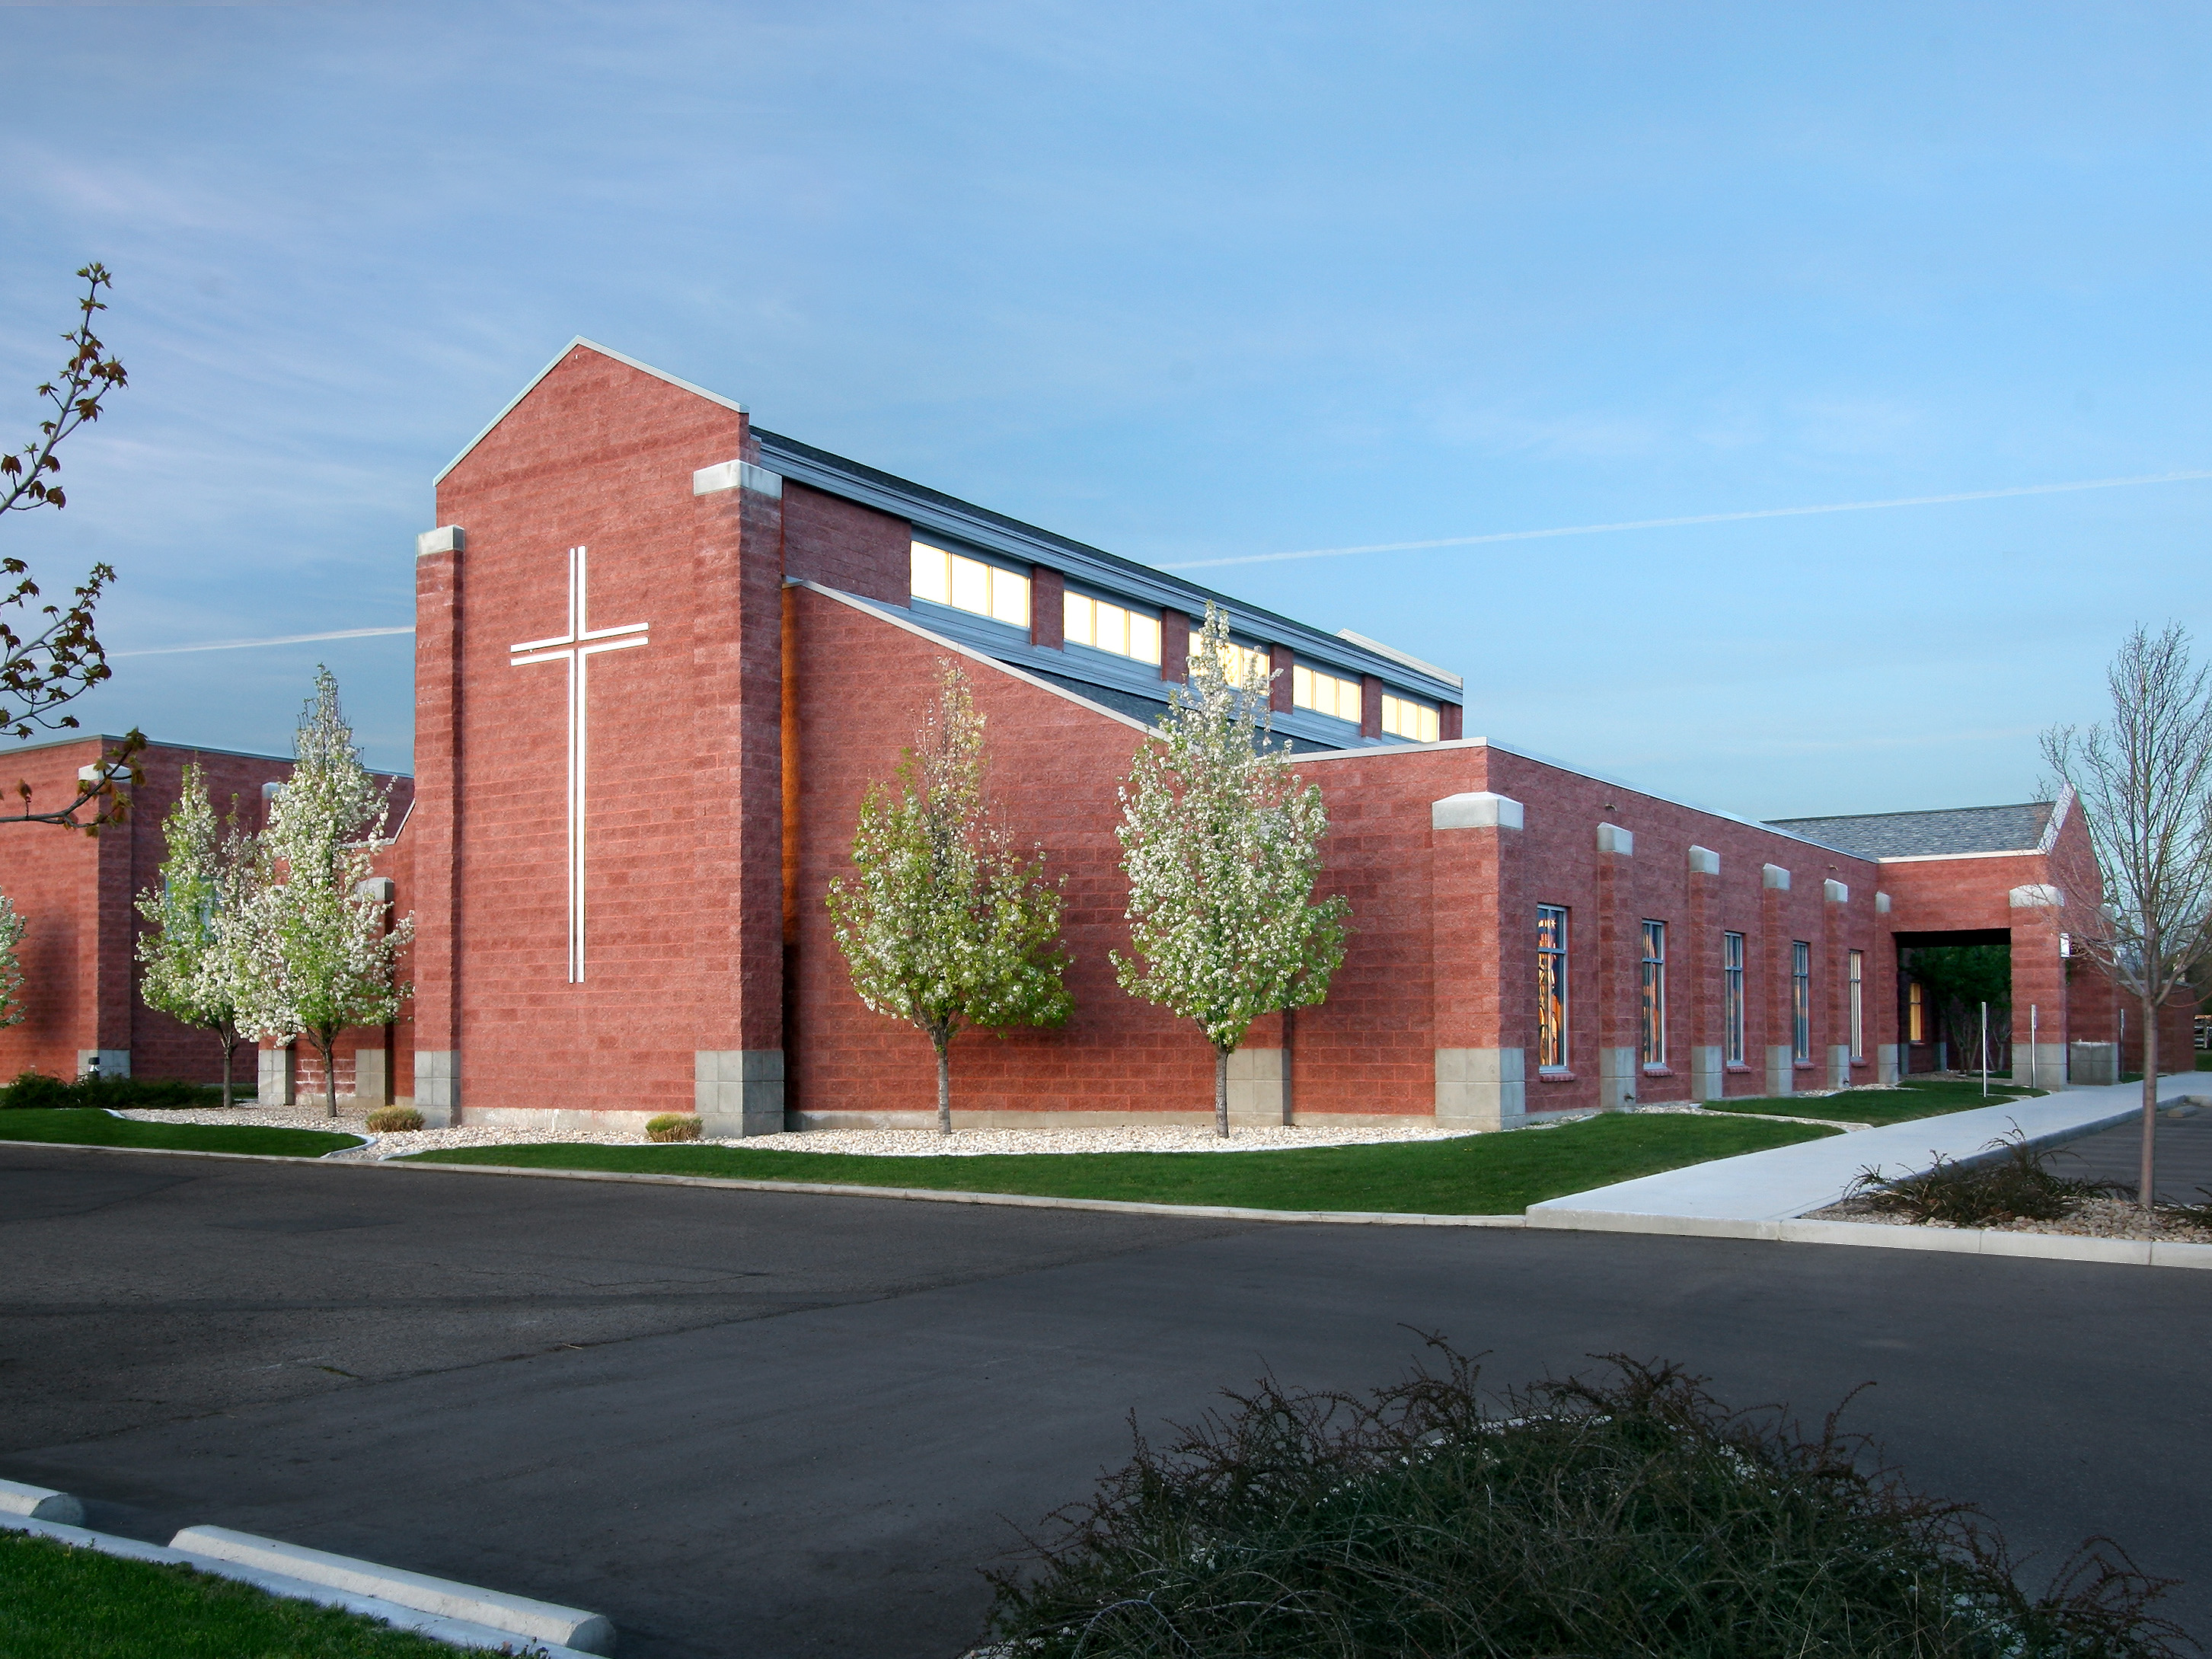 Shepherd of the valley lutheran church boise idaho for Boise residential architects